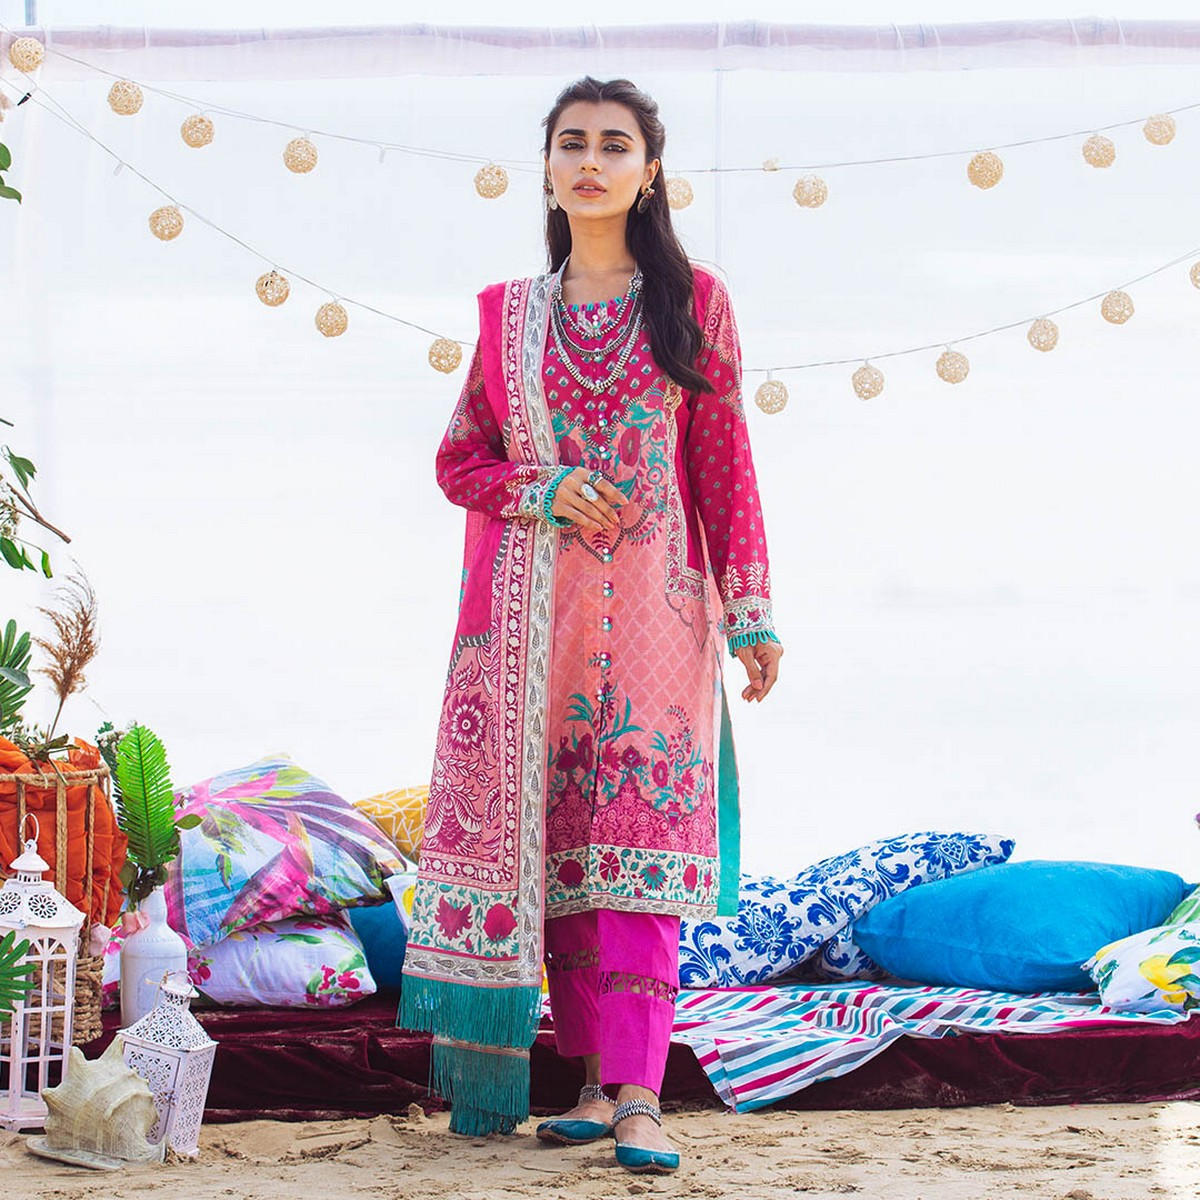 Maahru French Rose  - Women's Unstitched 3PC Summer Printed Lawn with Dupatta